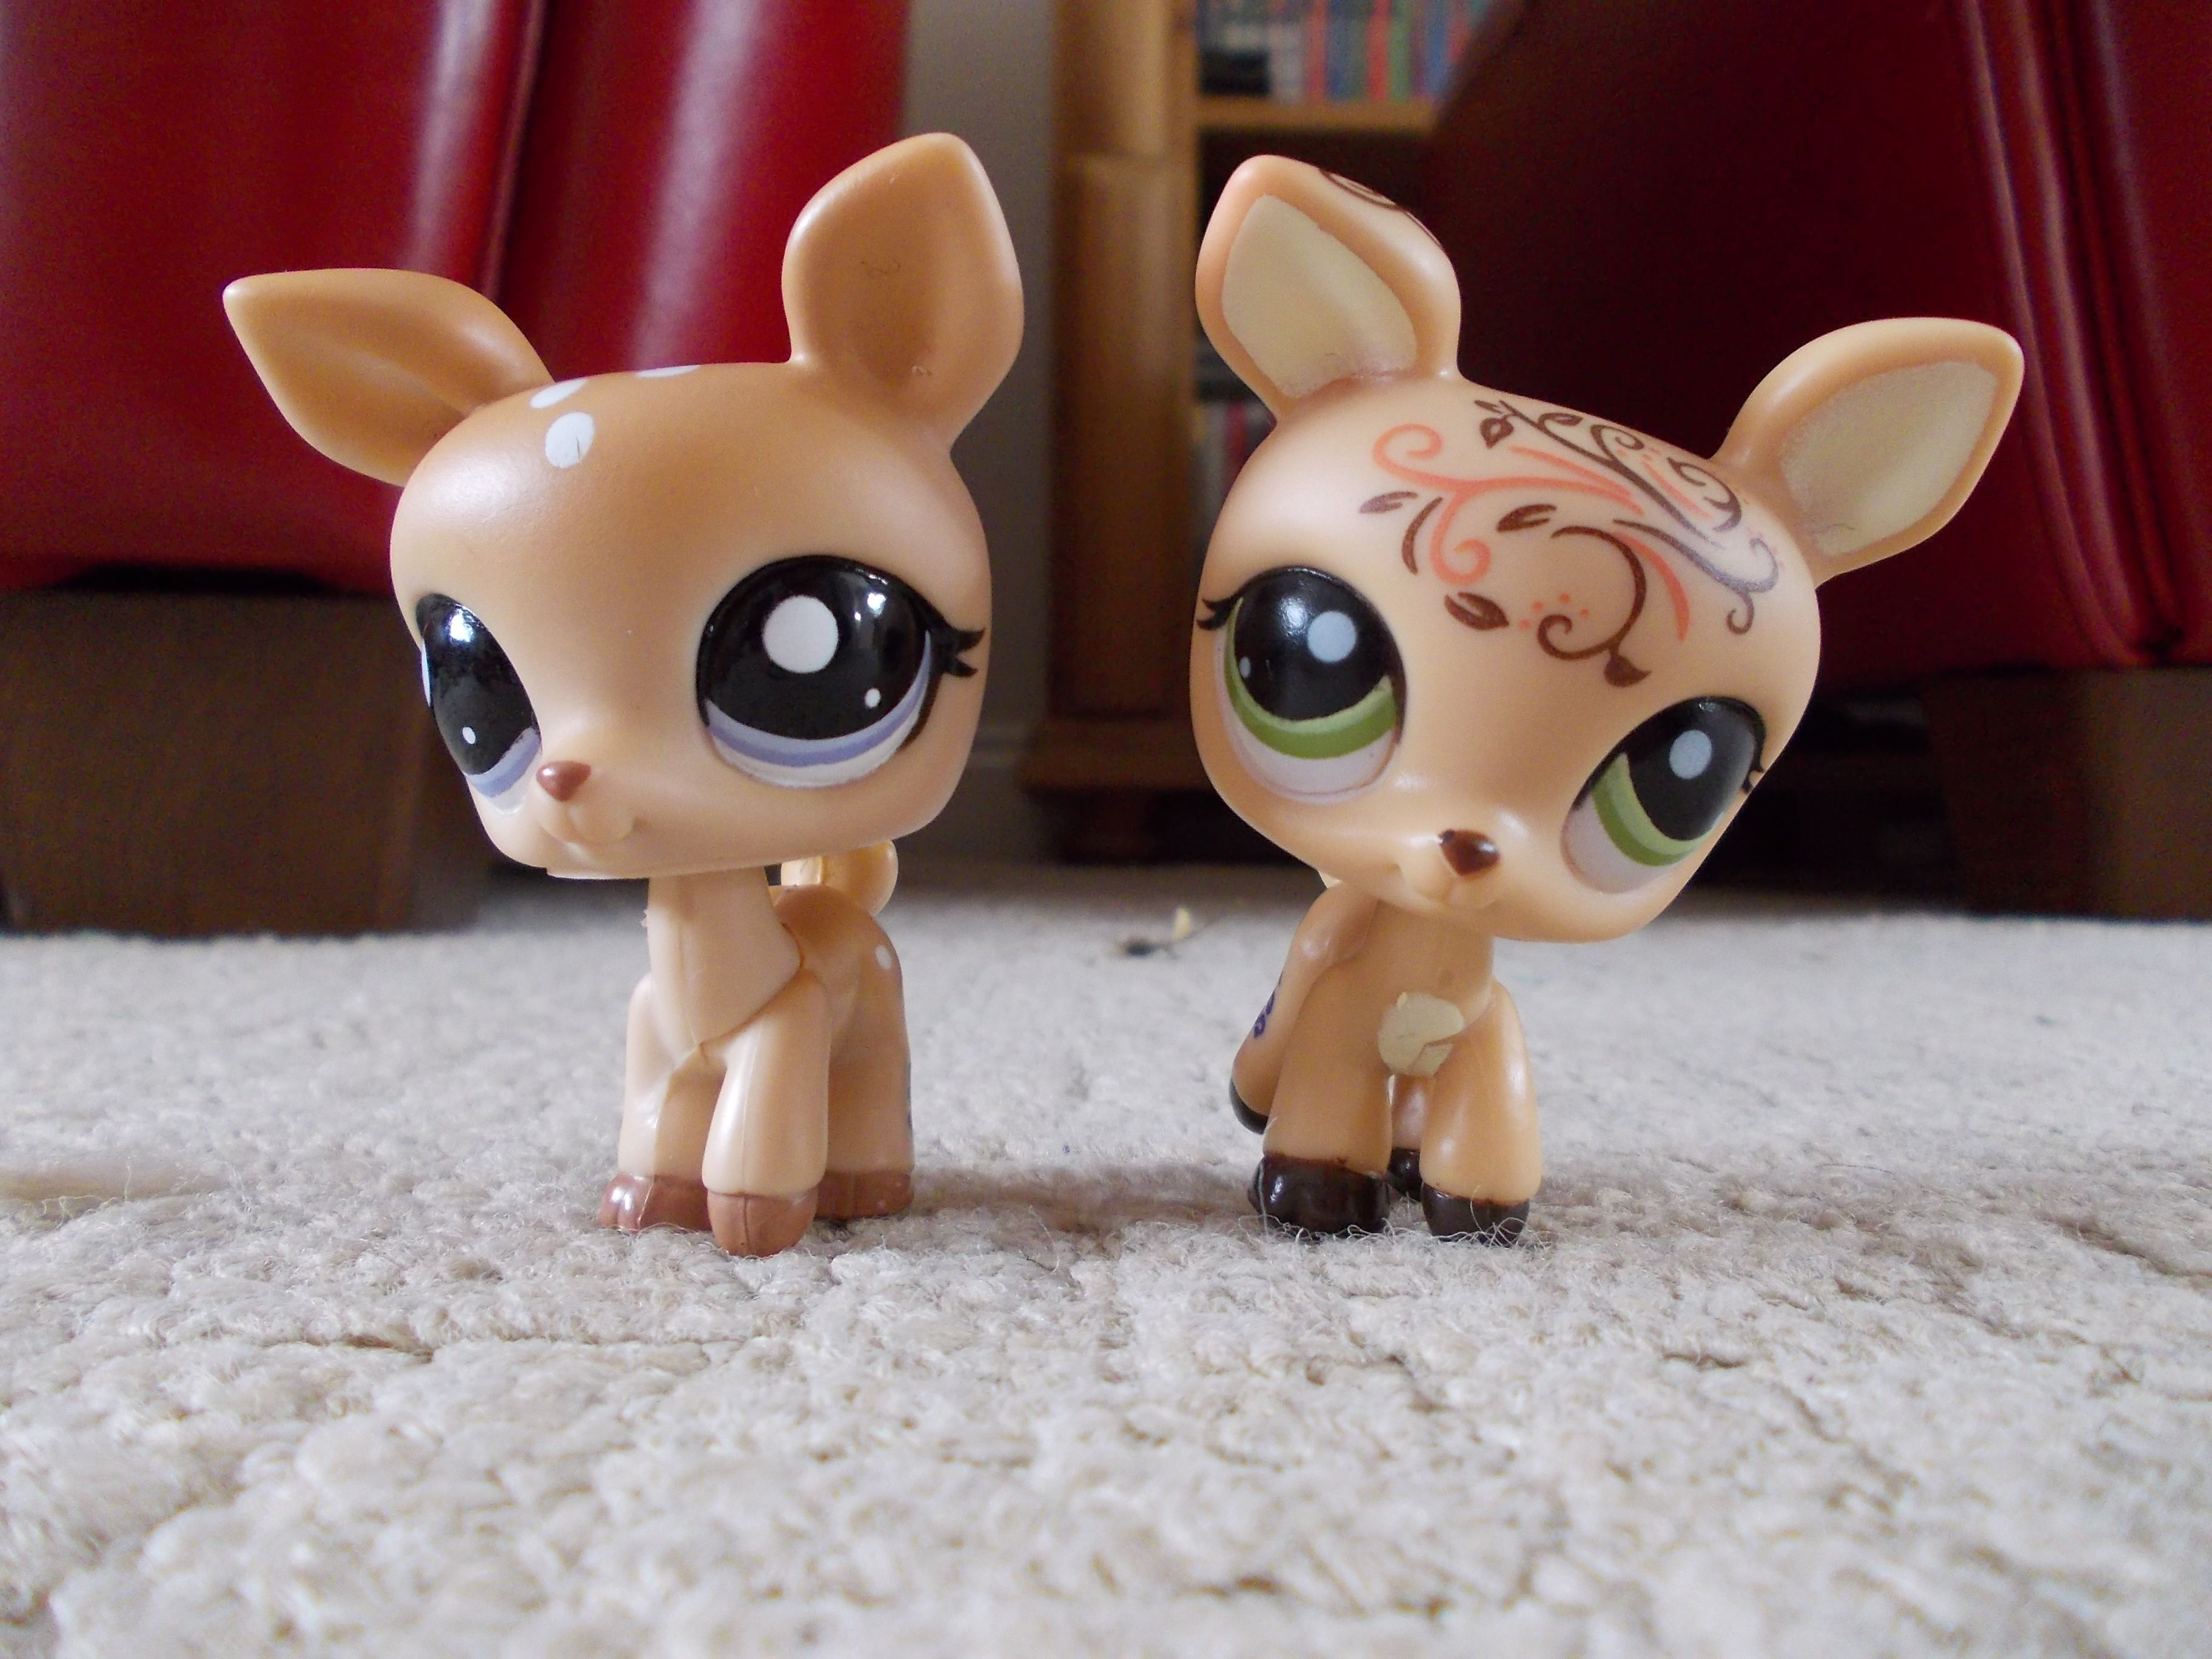 Roller skates for dogs - These Are My Littlest Pet Shop Deer